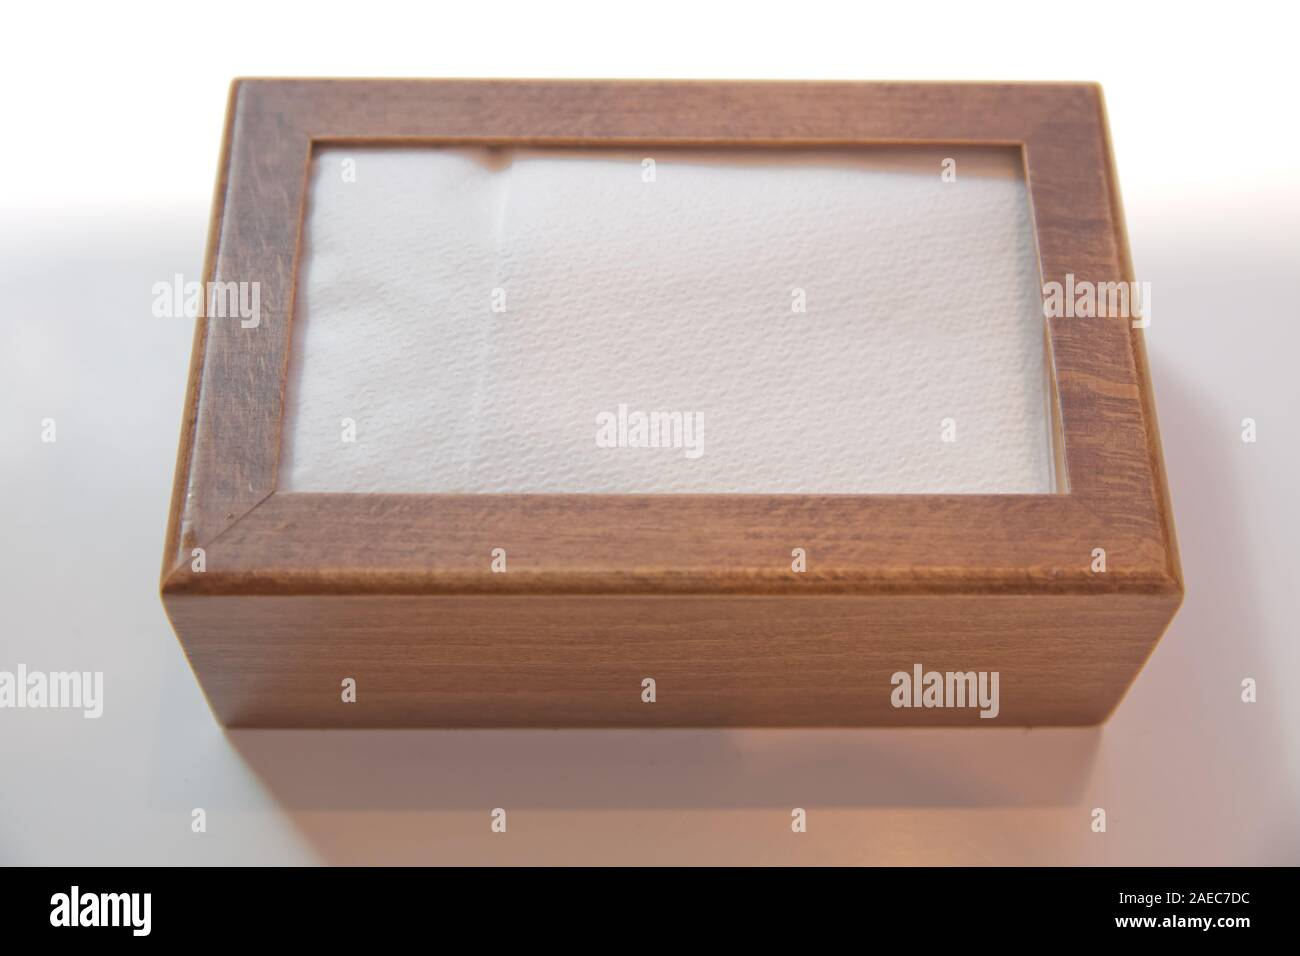 Wooden Napkin Holder With Paper Serviettes Wooden Brown Empty Napkin Box Wooden Stand With Salt Shaker Napkins On A Wooden Table In A Cafe Stock Photo Alamy